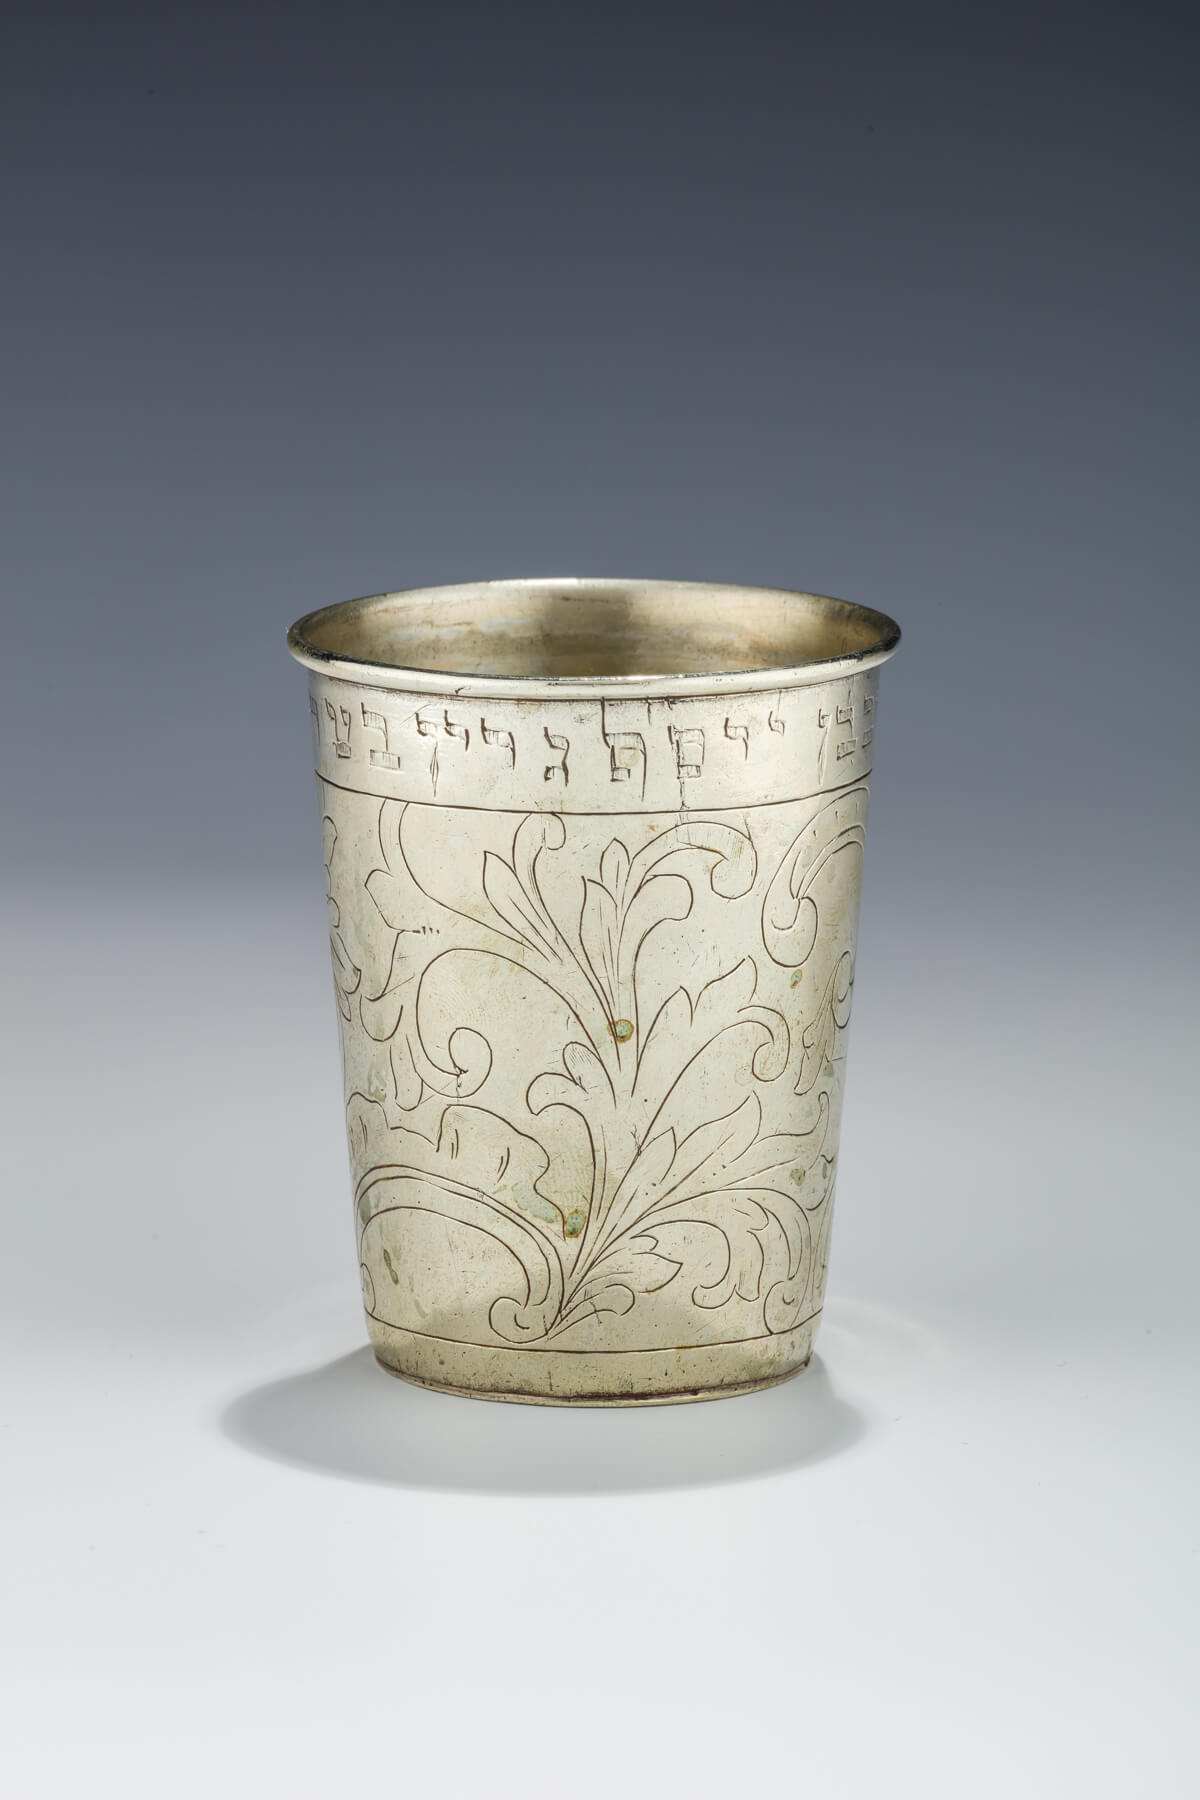 009. Large Silver Kiddush Beaker